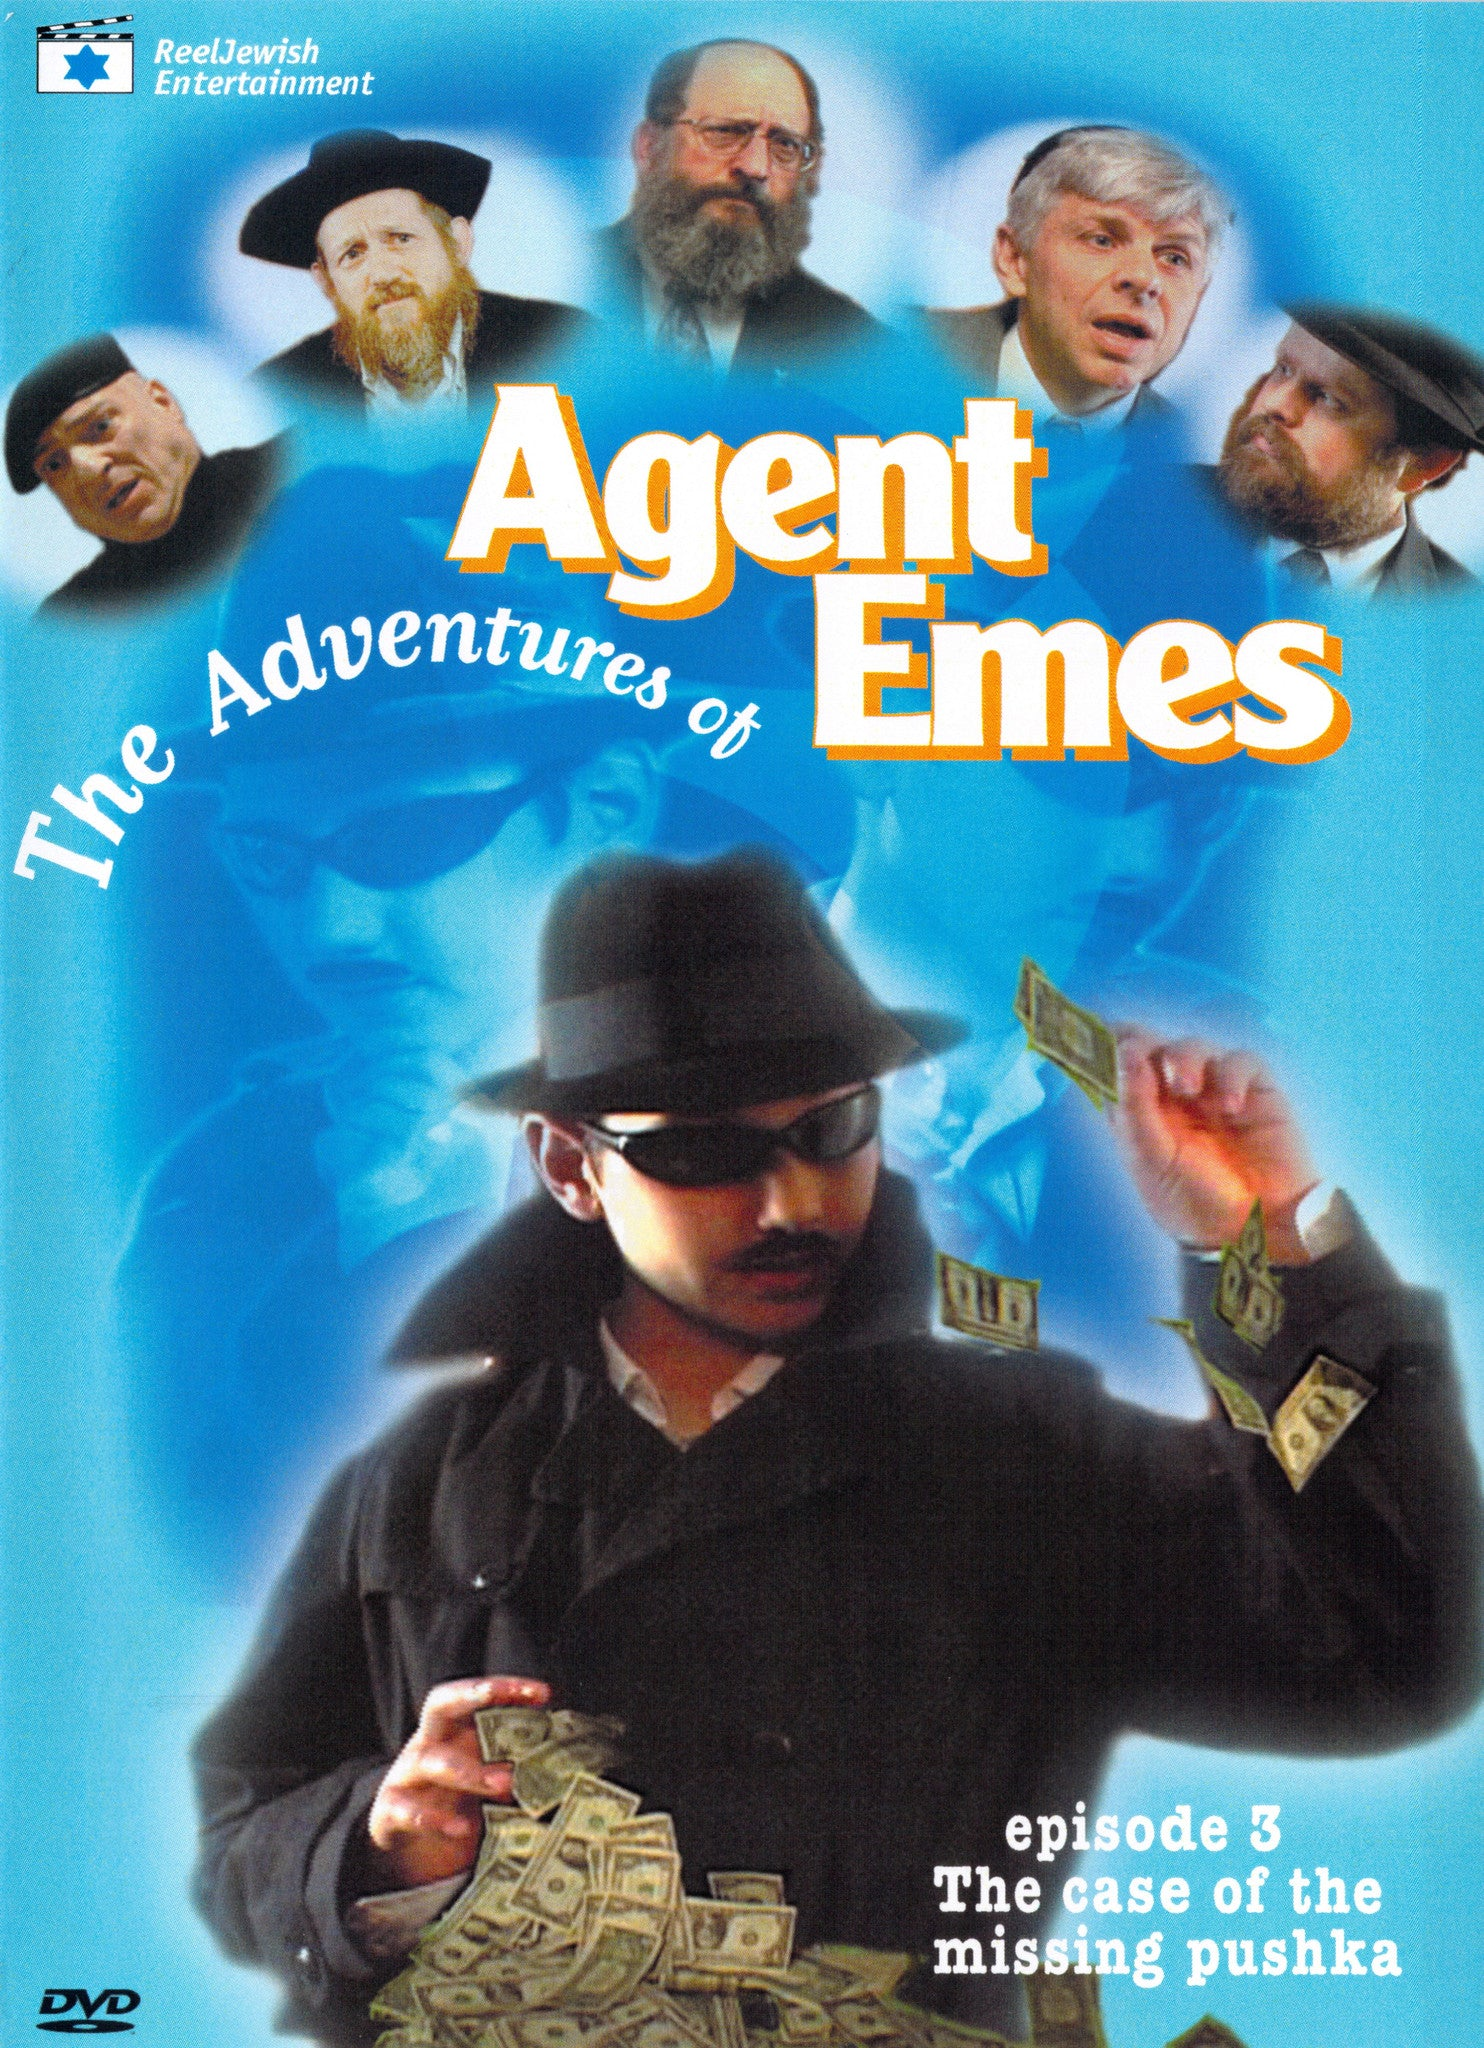 Agent Emes - Episode 3 The Case of the Missing Pushkah